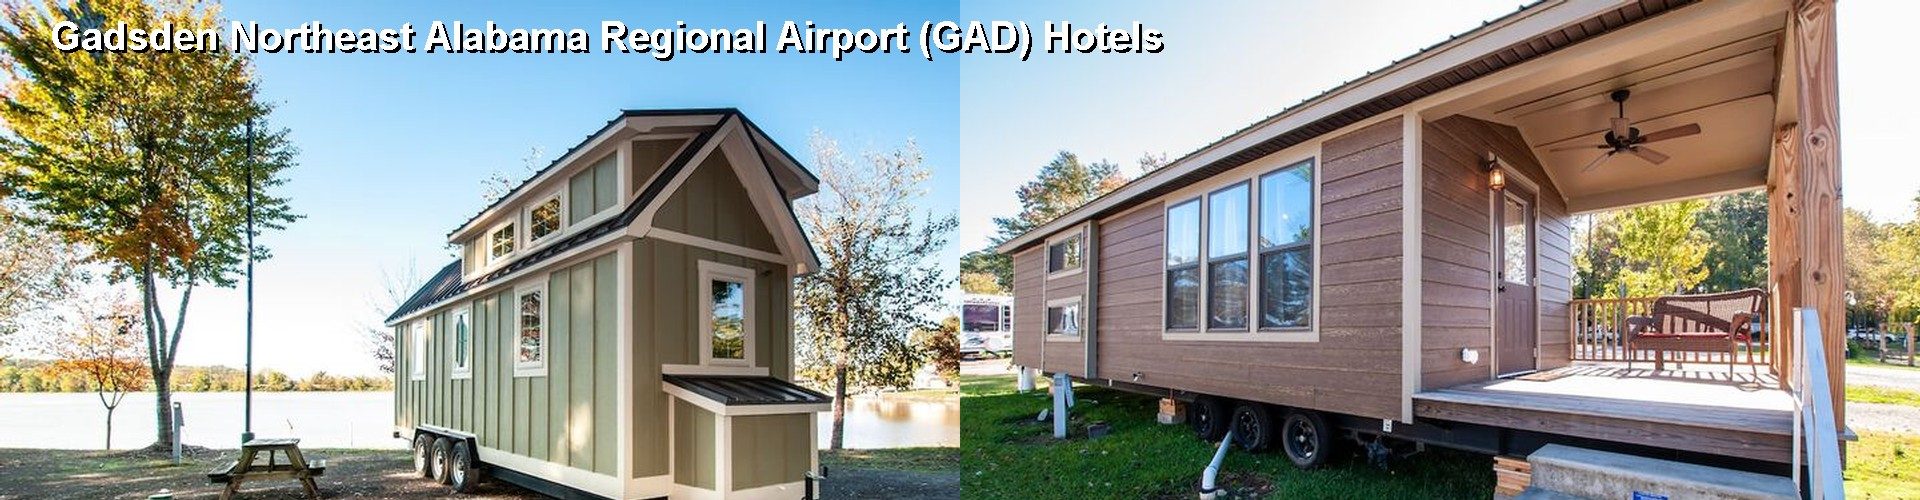 5 Best Hotels near Gadsden Northeast Alabama Regional Airport (GAD)